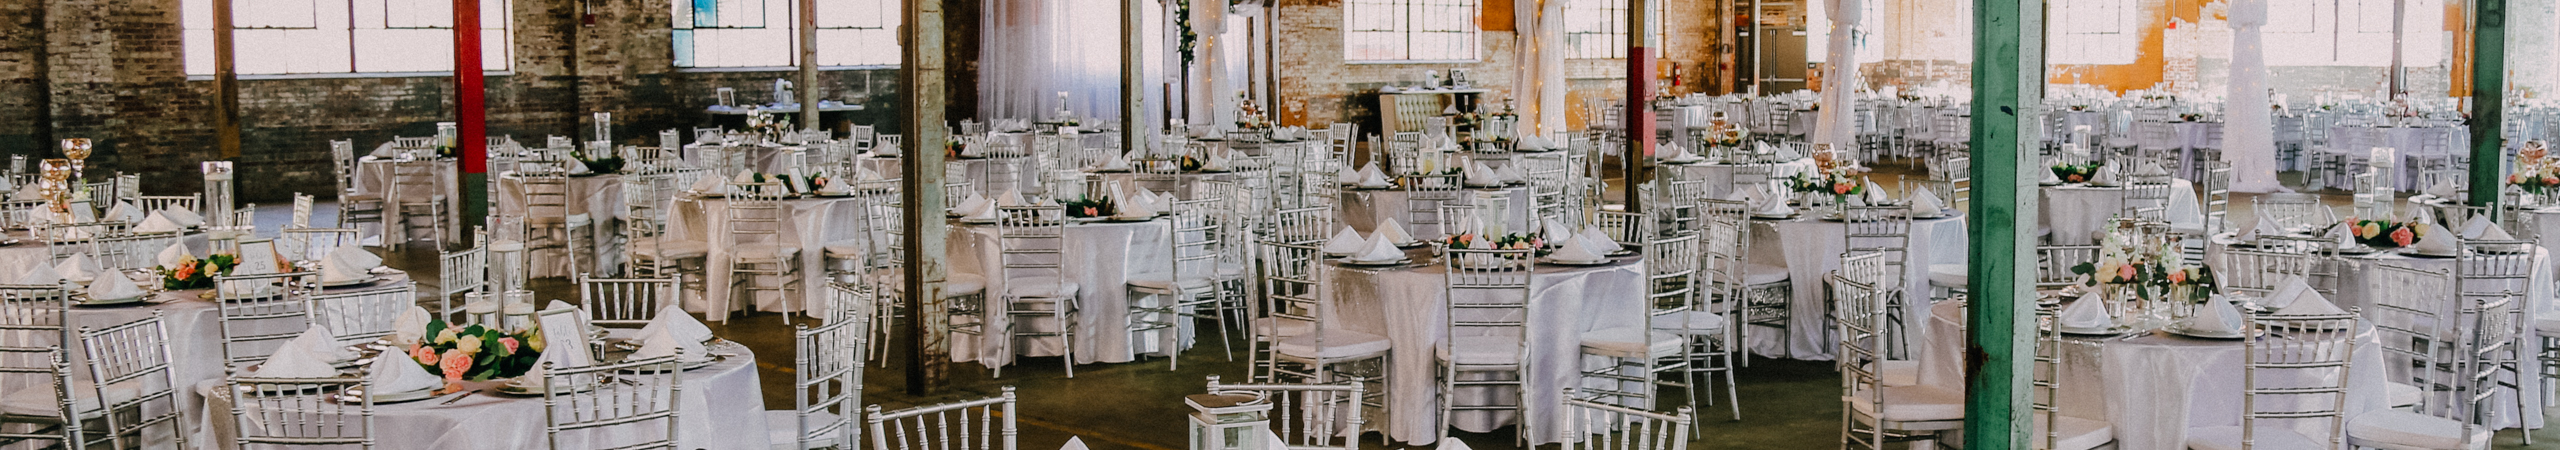 The Glass Factory Wedding